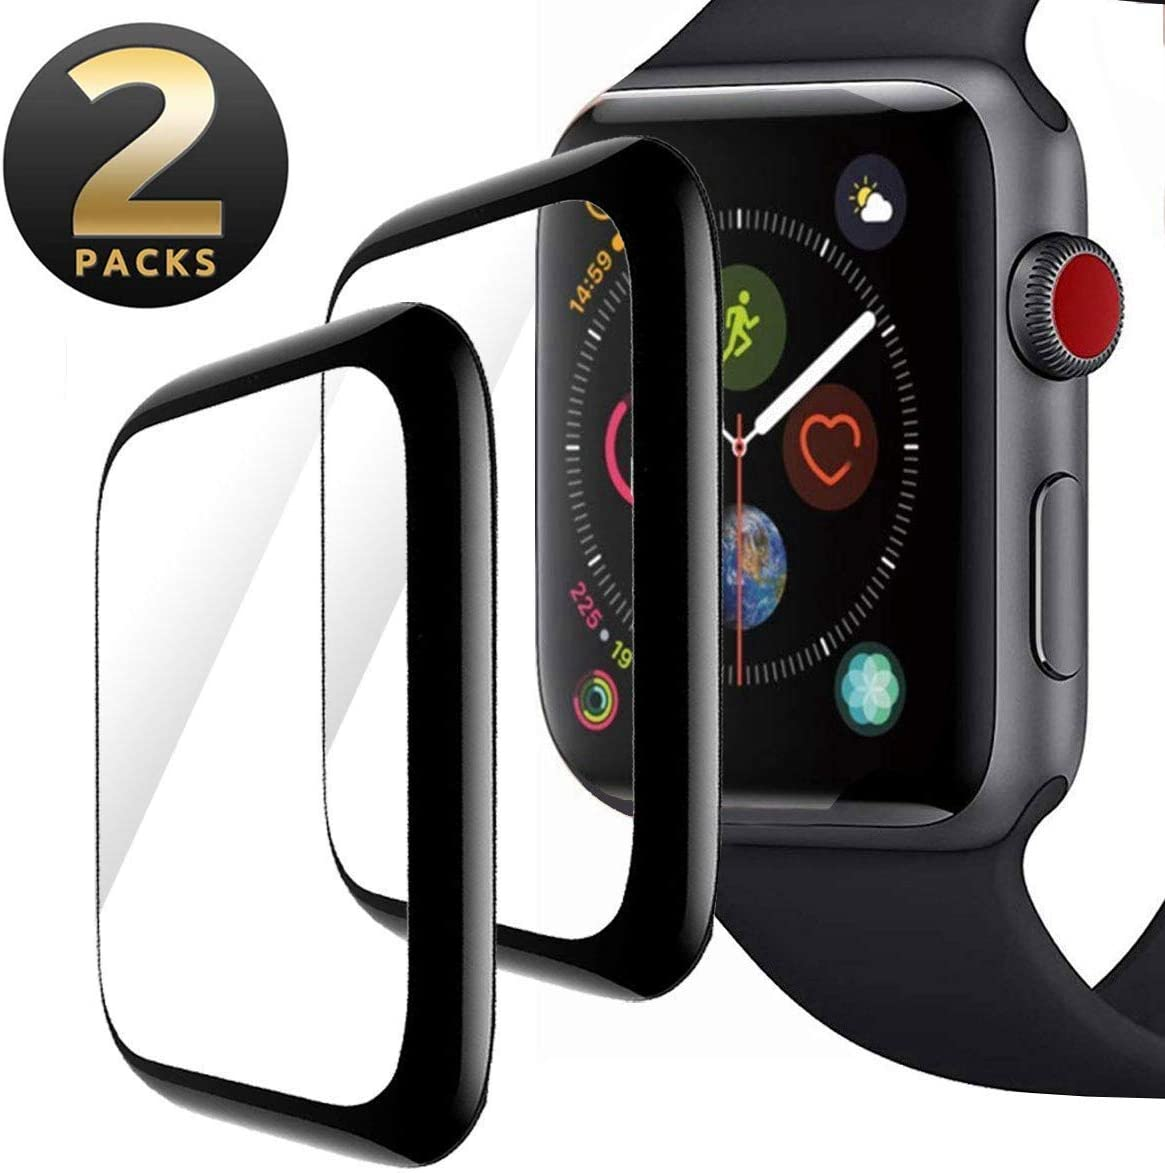 Screen Protector for Apple Watch 42mm, [2 pack] Max Coverage Anti-Scratch Bubble-Free Black Edge 3D Curved Tempered Glass Film Compatible with iWatch 42mm Series 3/2/1